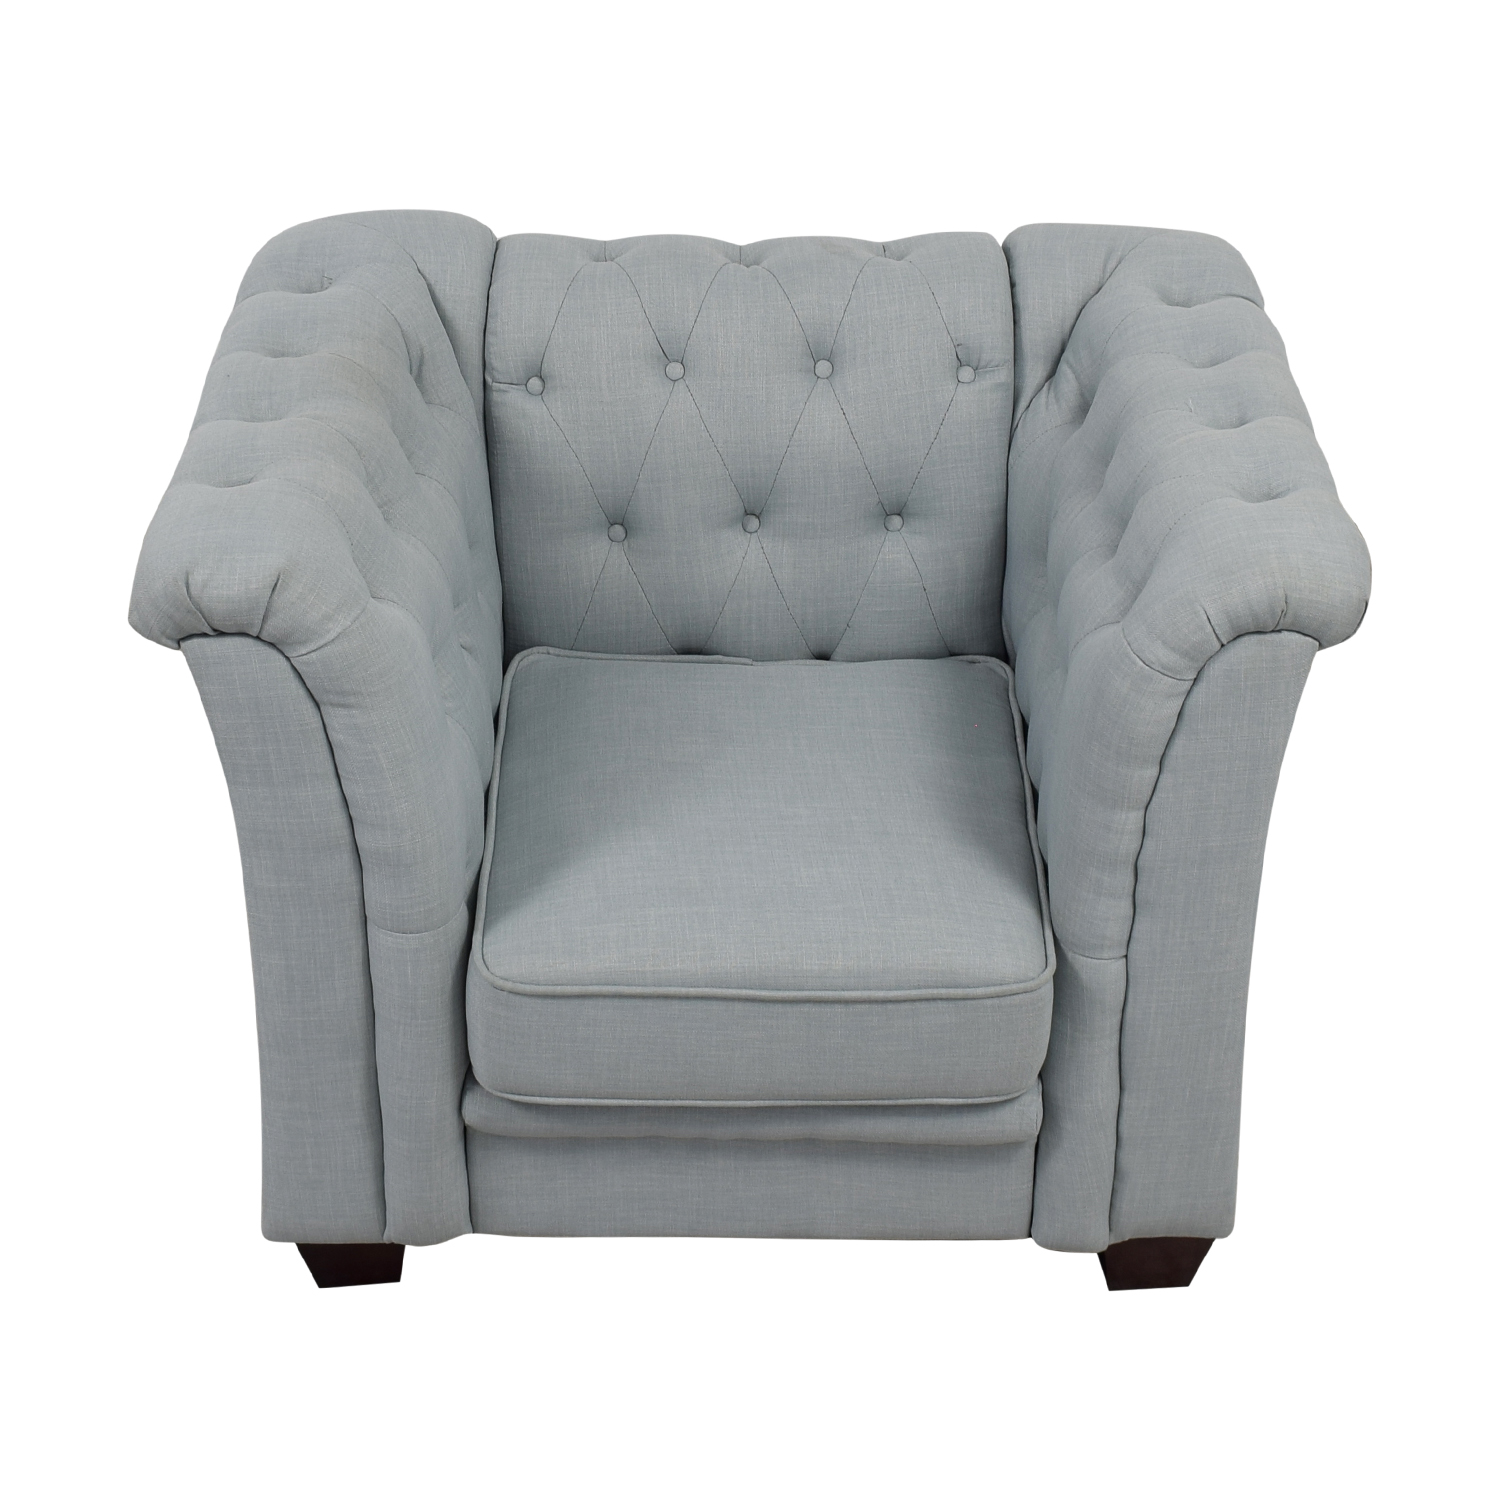 Delvi Furniture Sky Blue Tufted Accent Chair sale